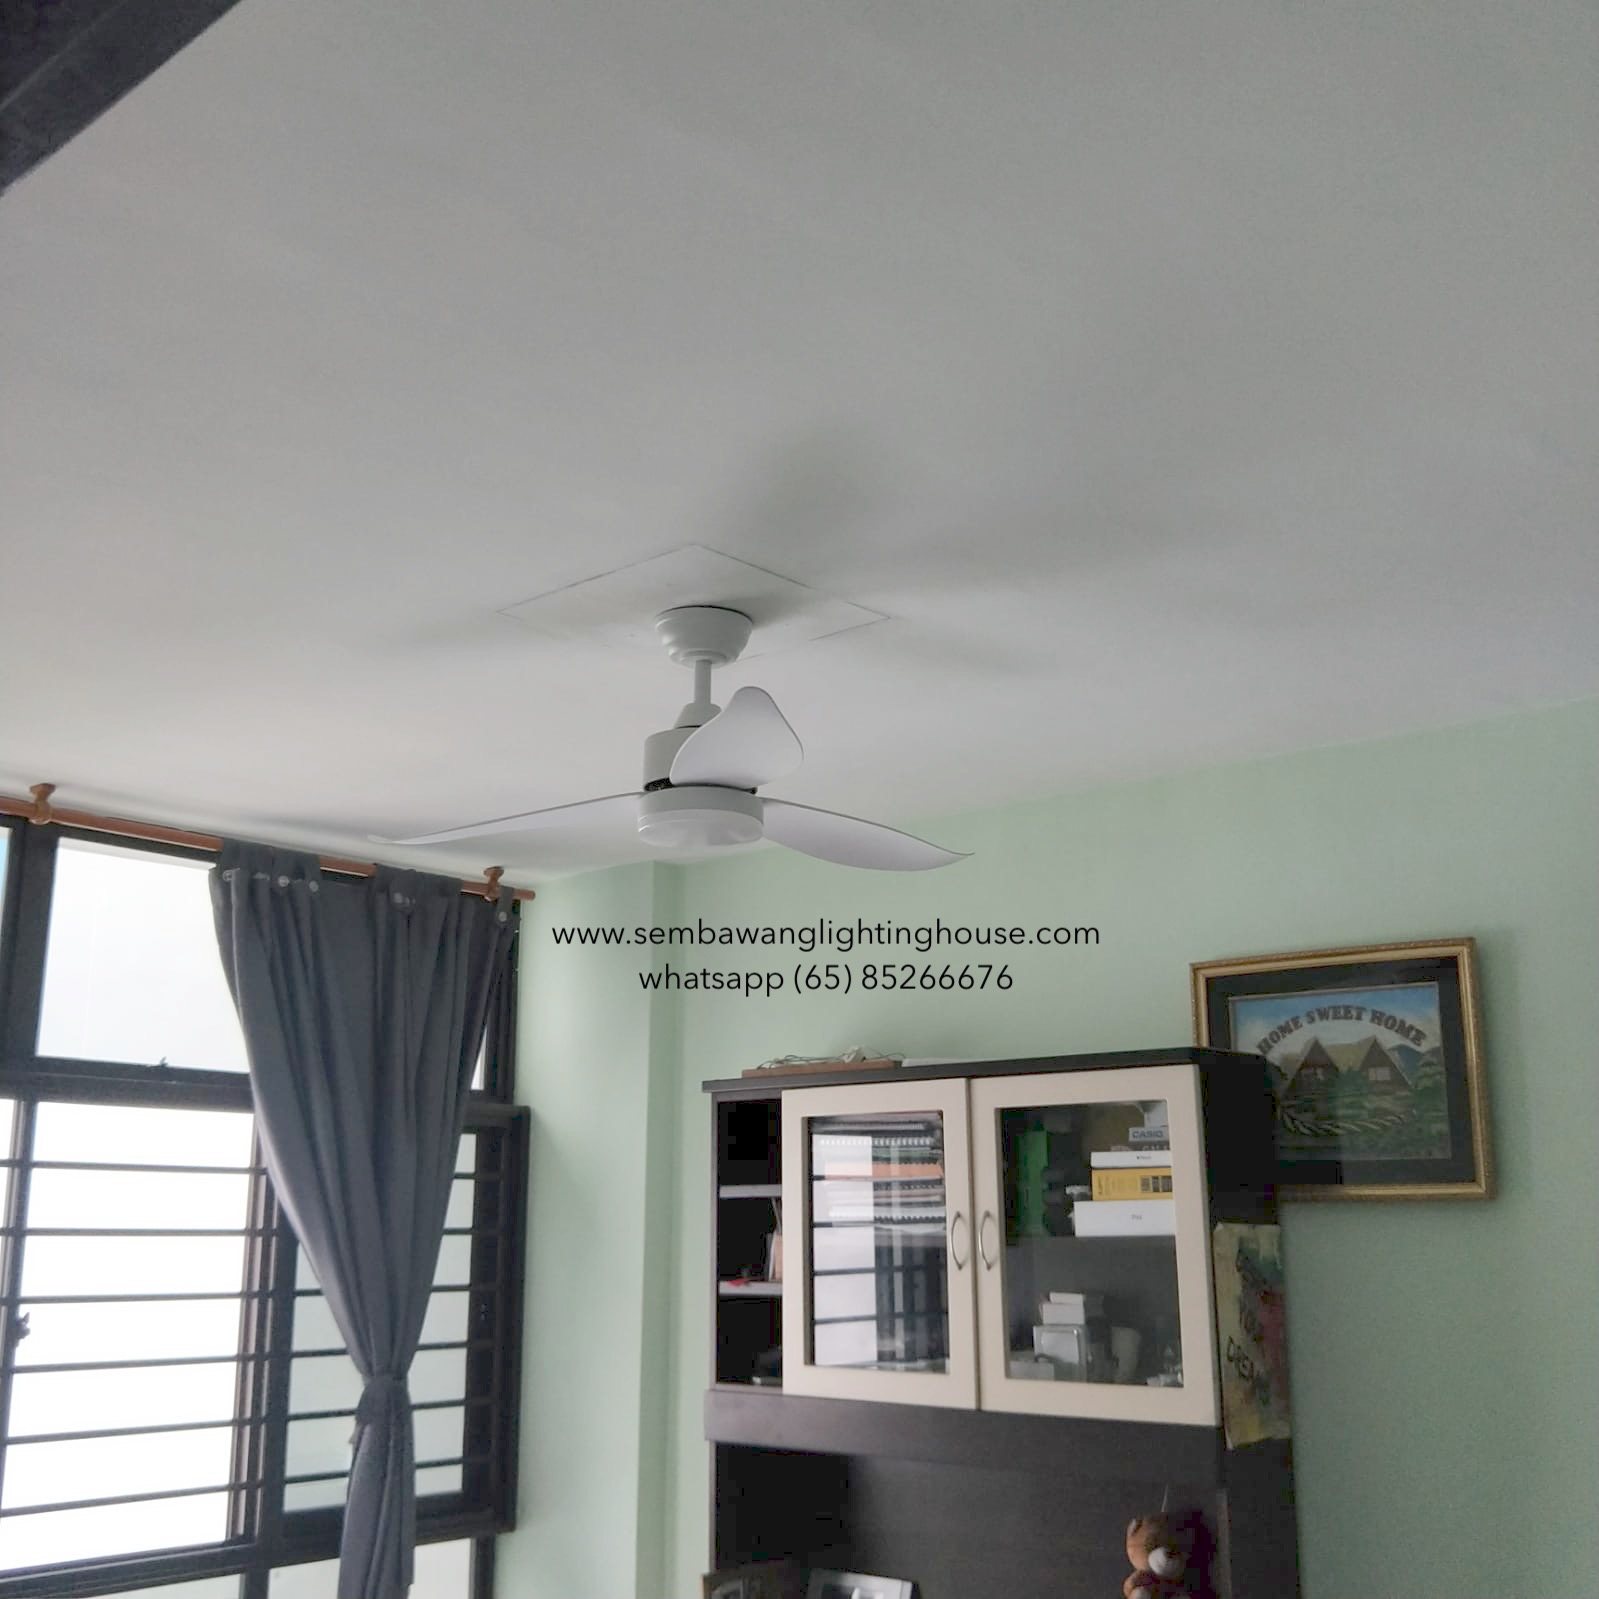 bestar-razor-white-ceiling-fan-sembawang-lighting-house-08.jpg